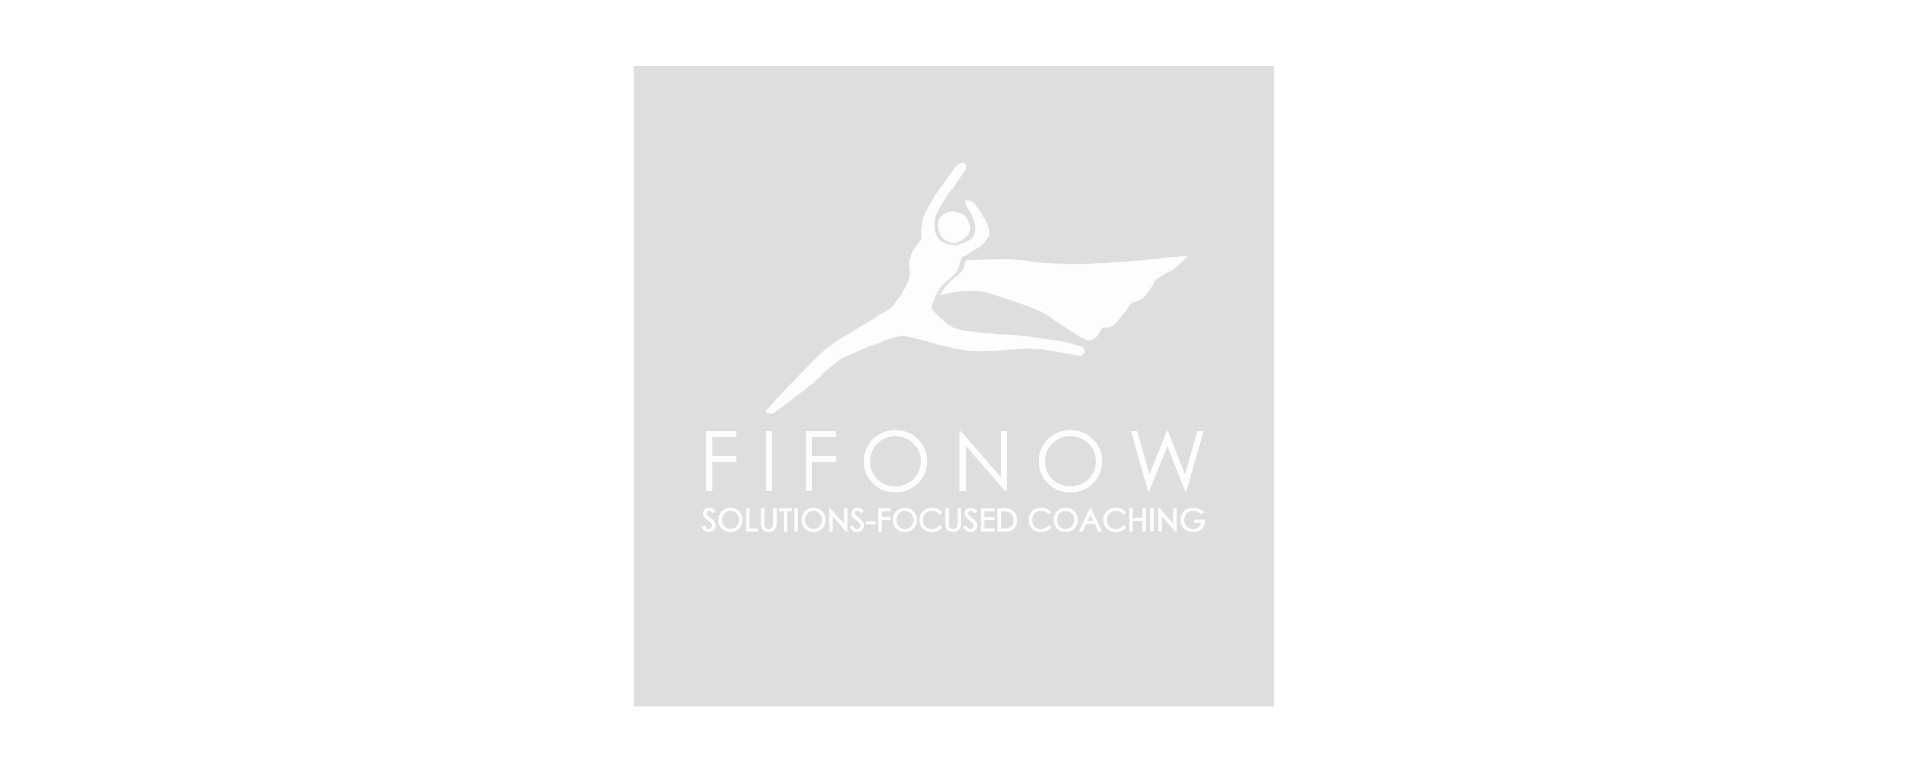 Fifonow solutions-focused coaching